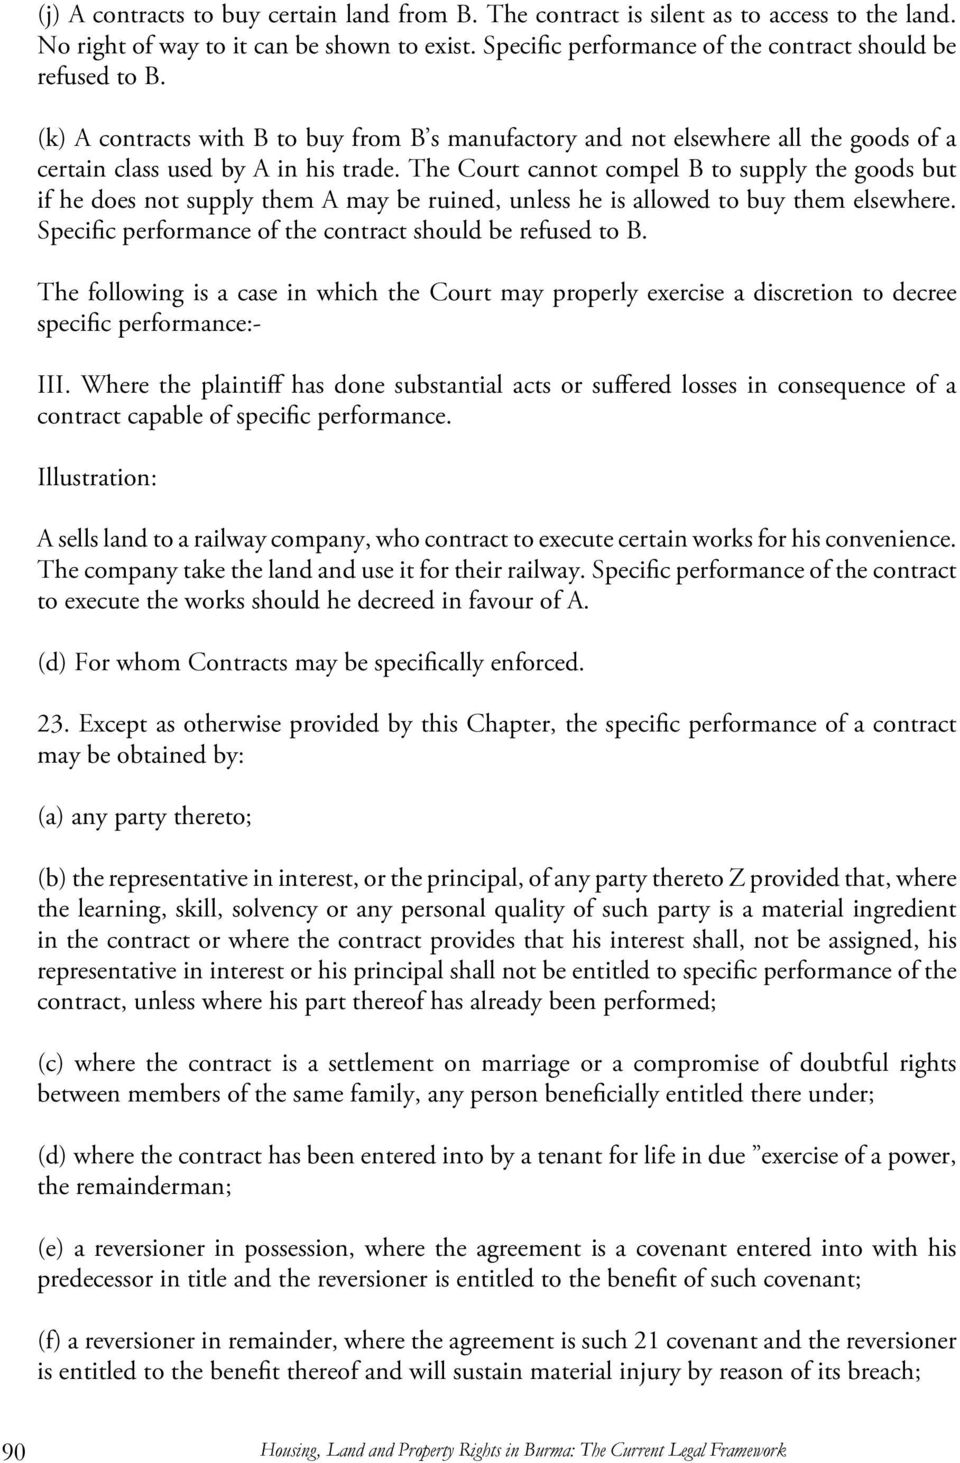 The Court cannot compel B to supply the goods but if he does not supply them A may be ruined, unless he is allowed to buy them elsewhere. Specific performance of the contract should be refused to B.